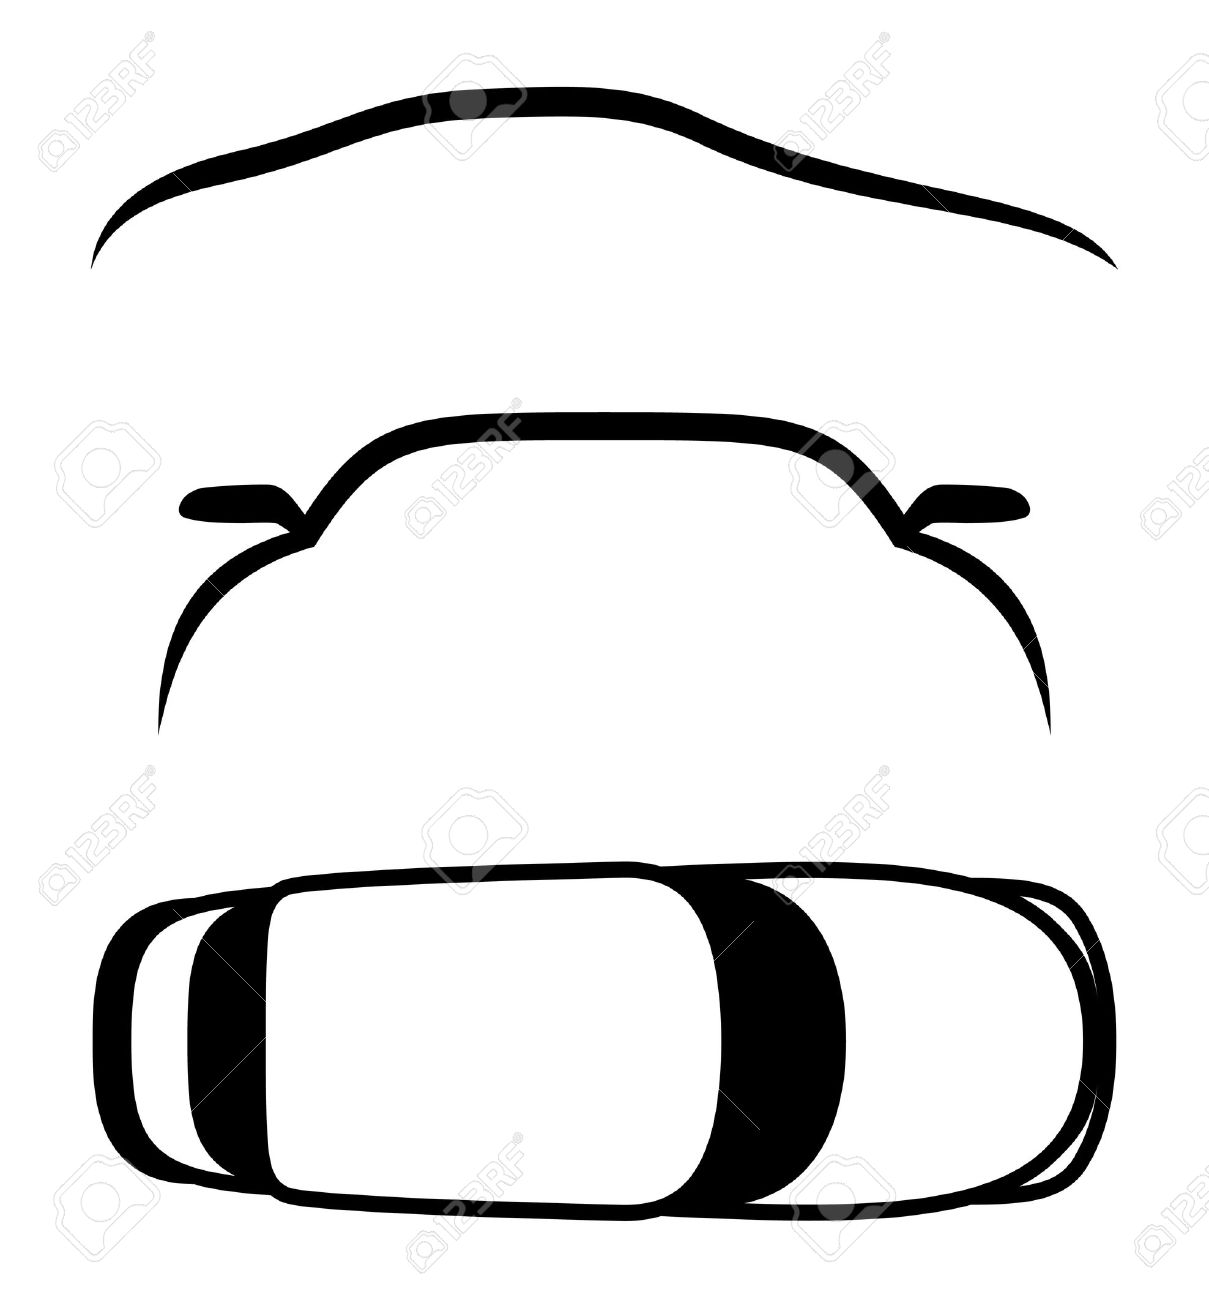 vector 3 icons cars royalty free cliparts vectors and stock rh 123rf com car icon vector top view car icon vector free